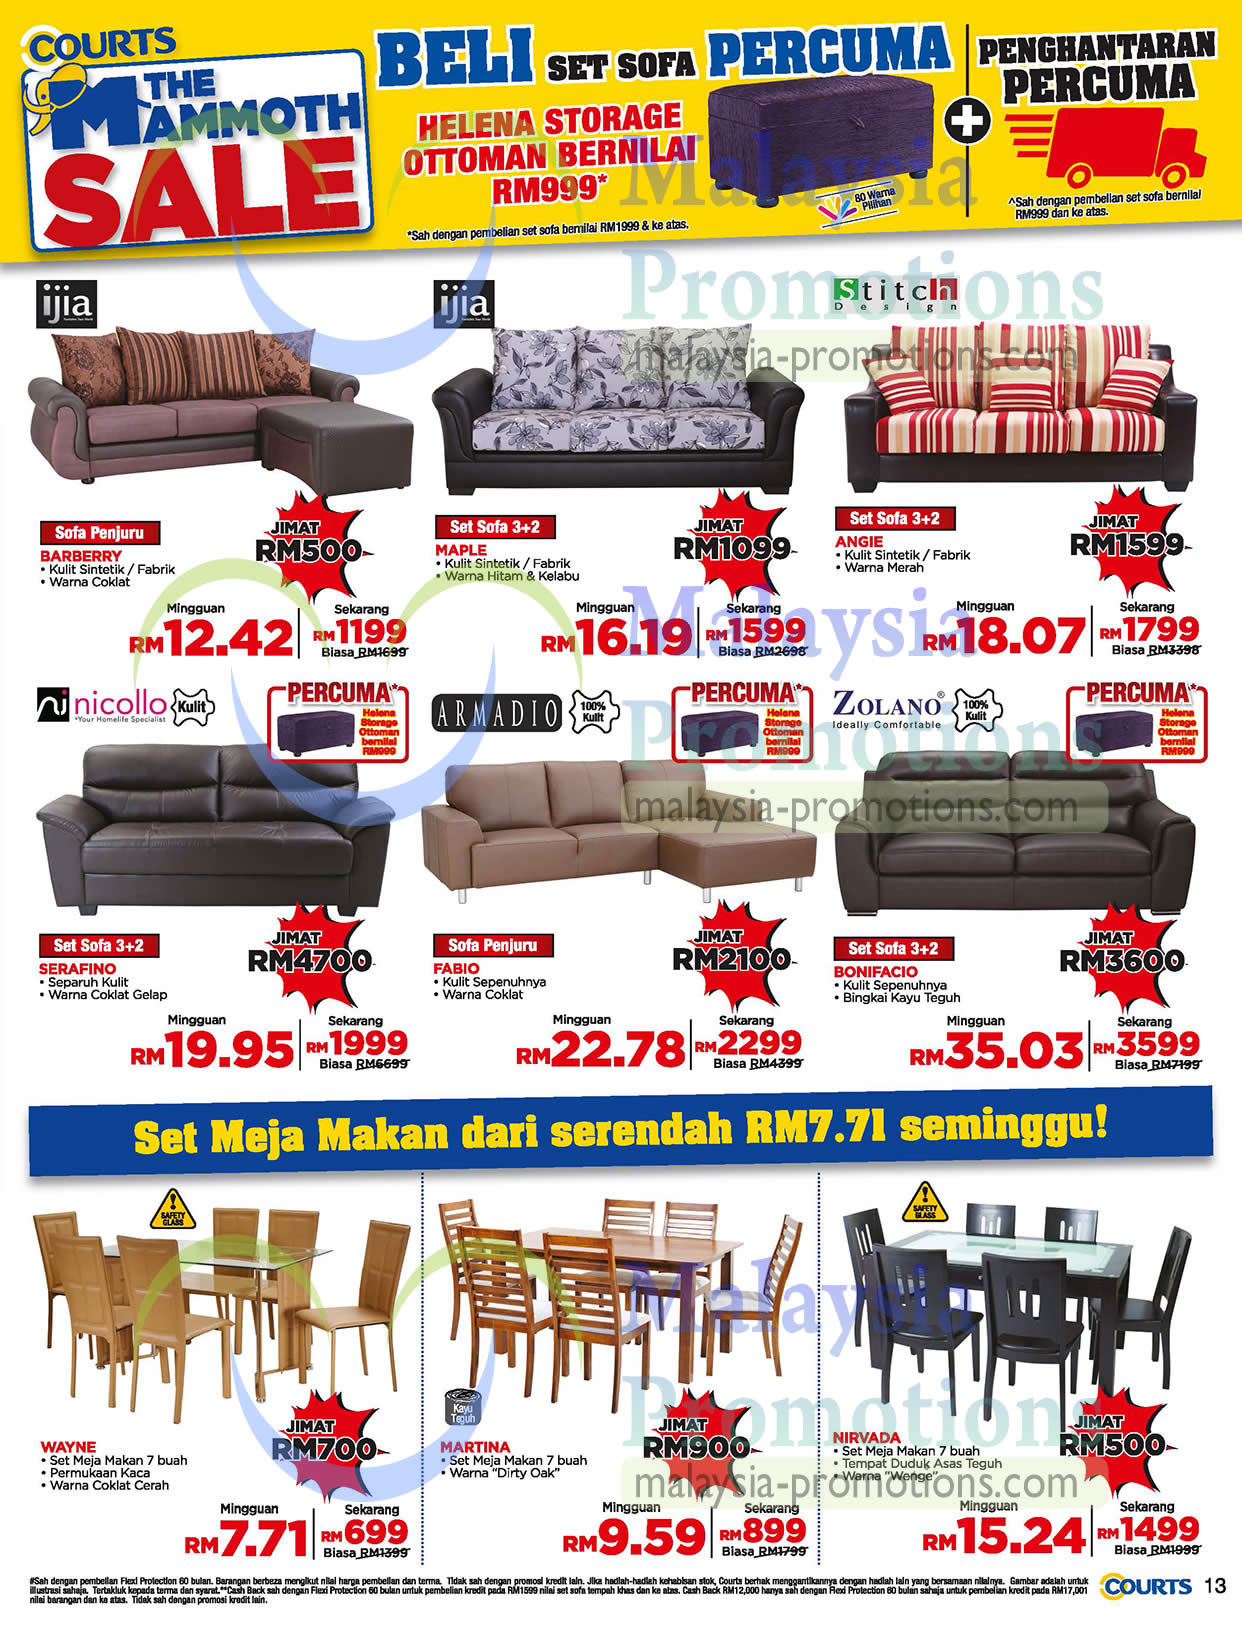 Image result for cheap sofa courts